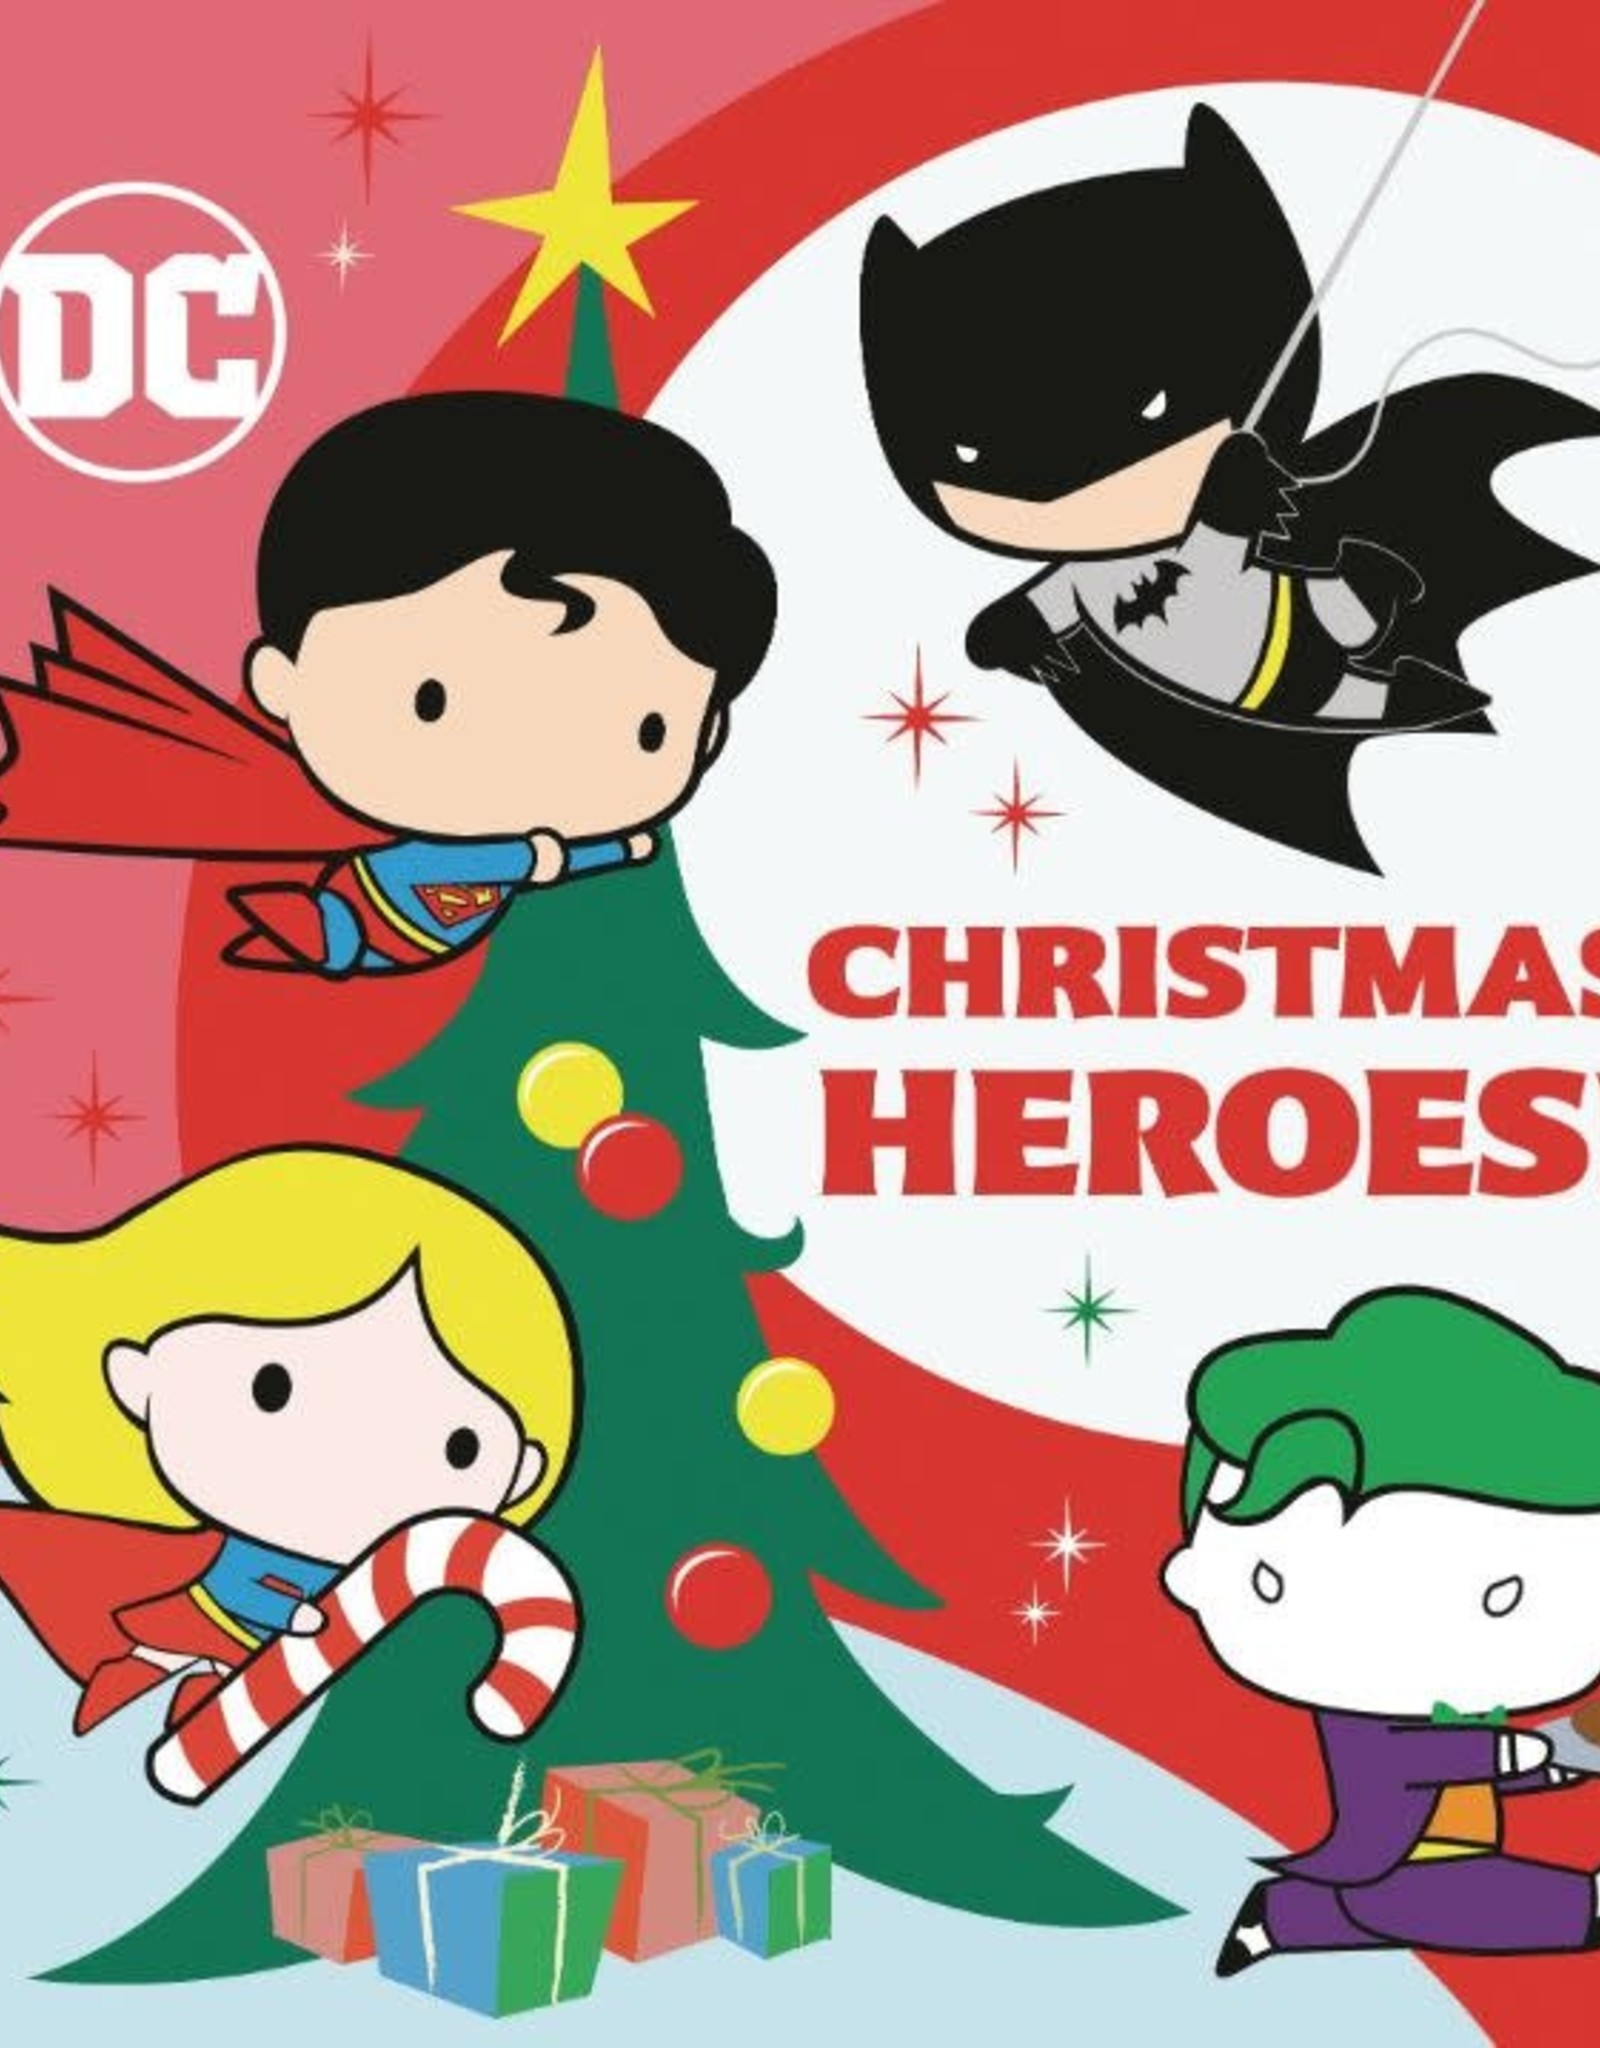 Random House Books Young Reader DC Justice League Christmas Heroes Board Book